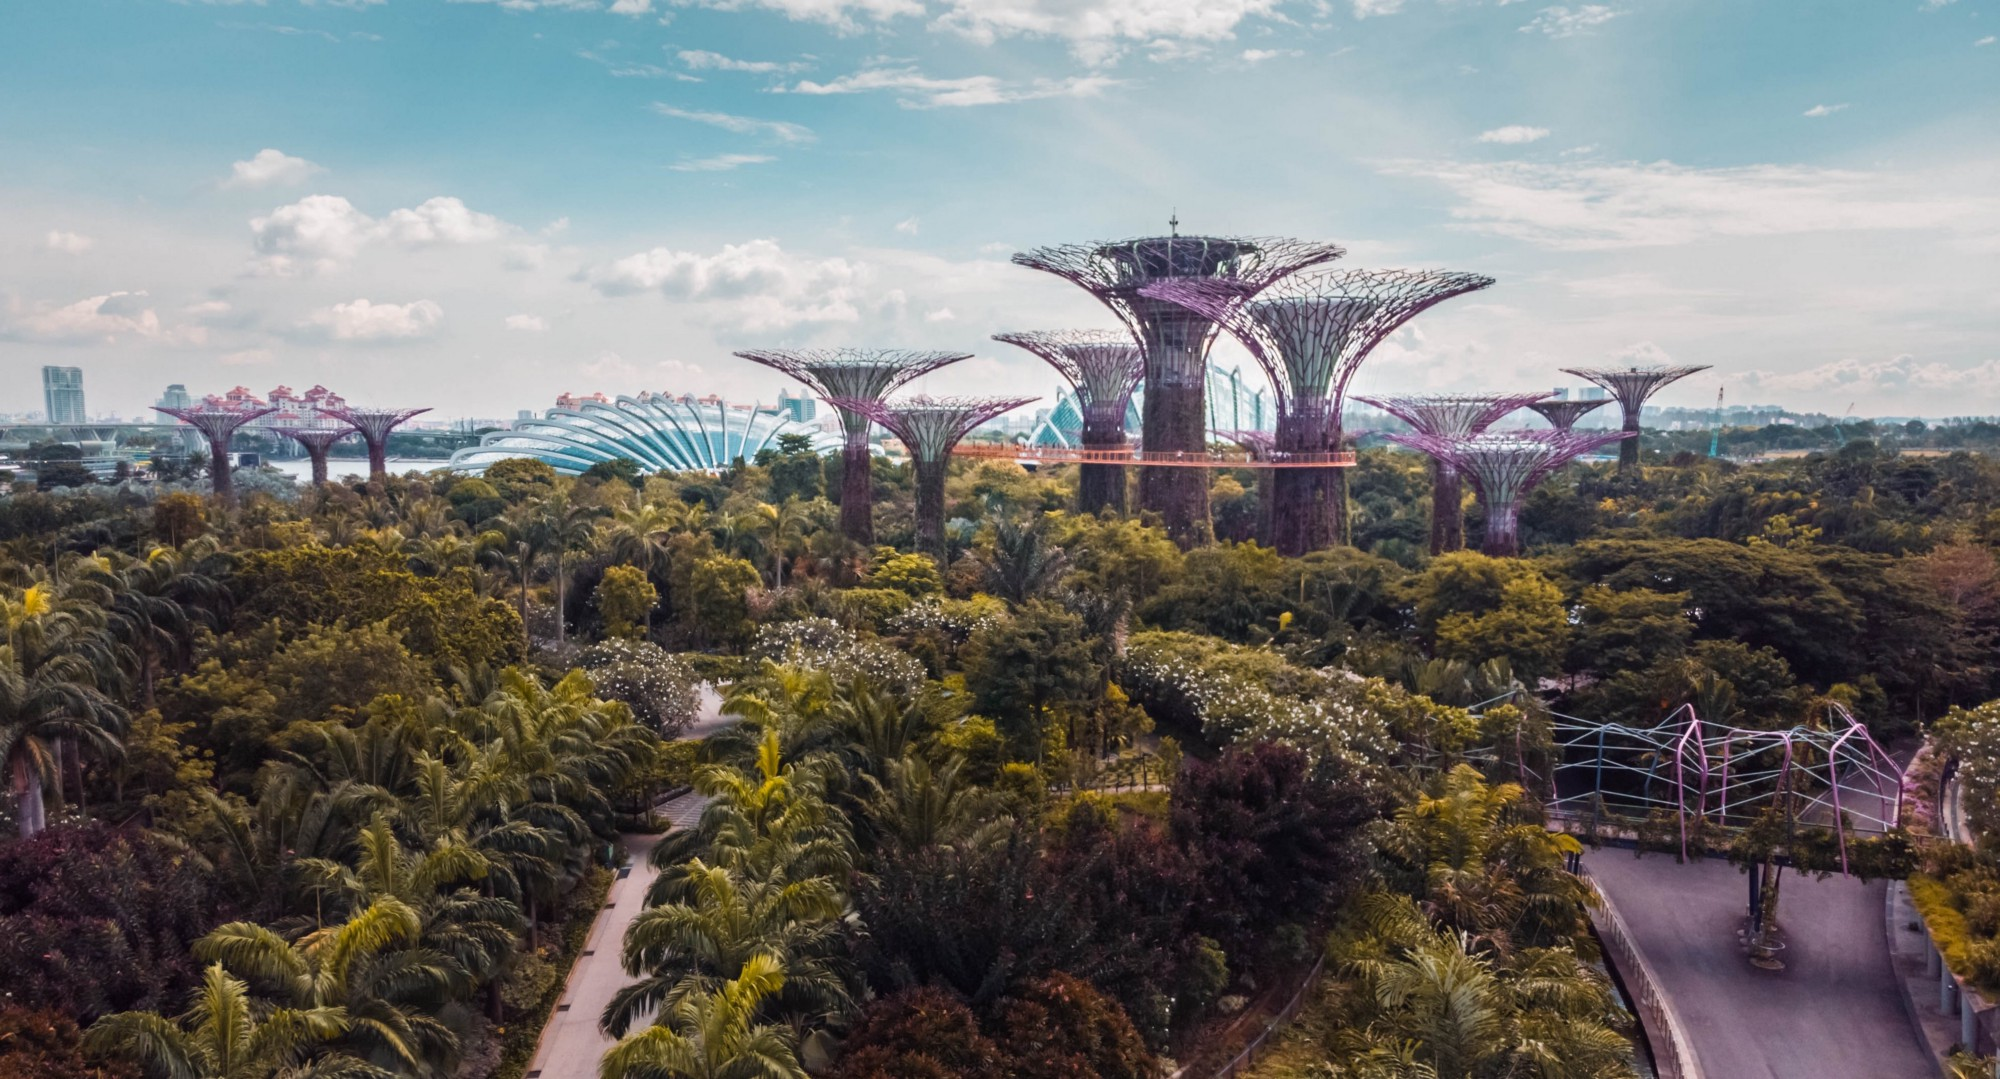 Marina Bay Park in Singapore, a green and futuristic environment.